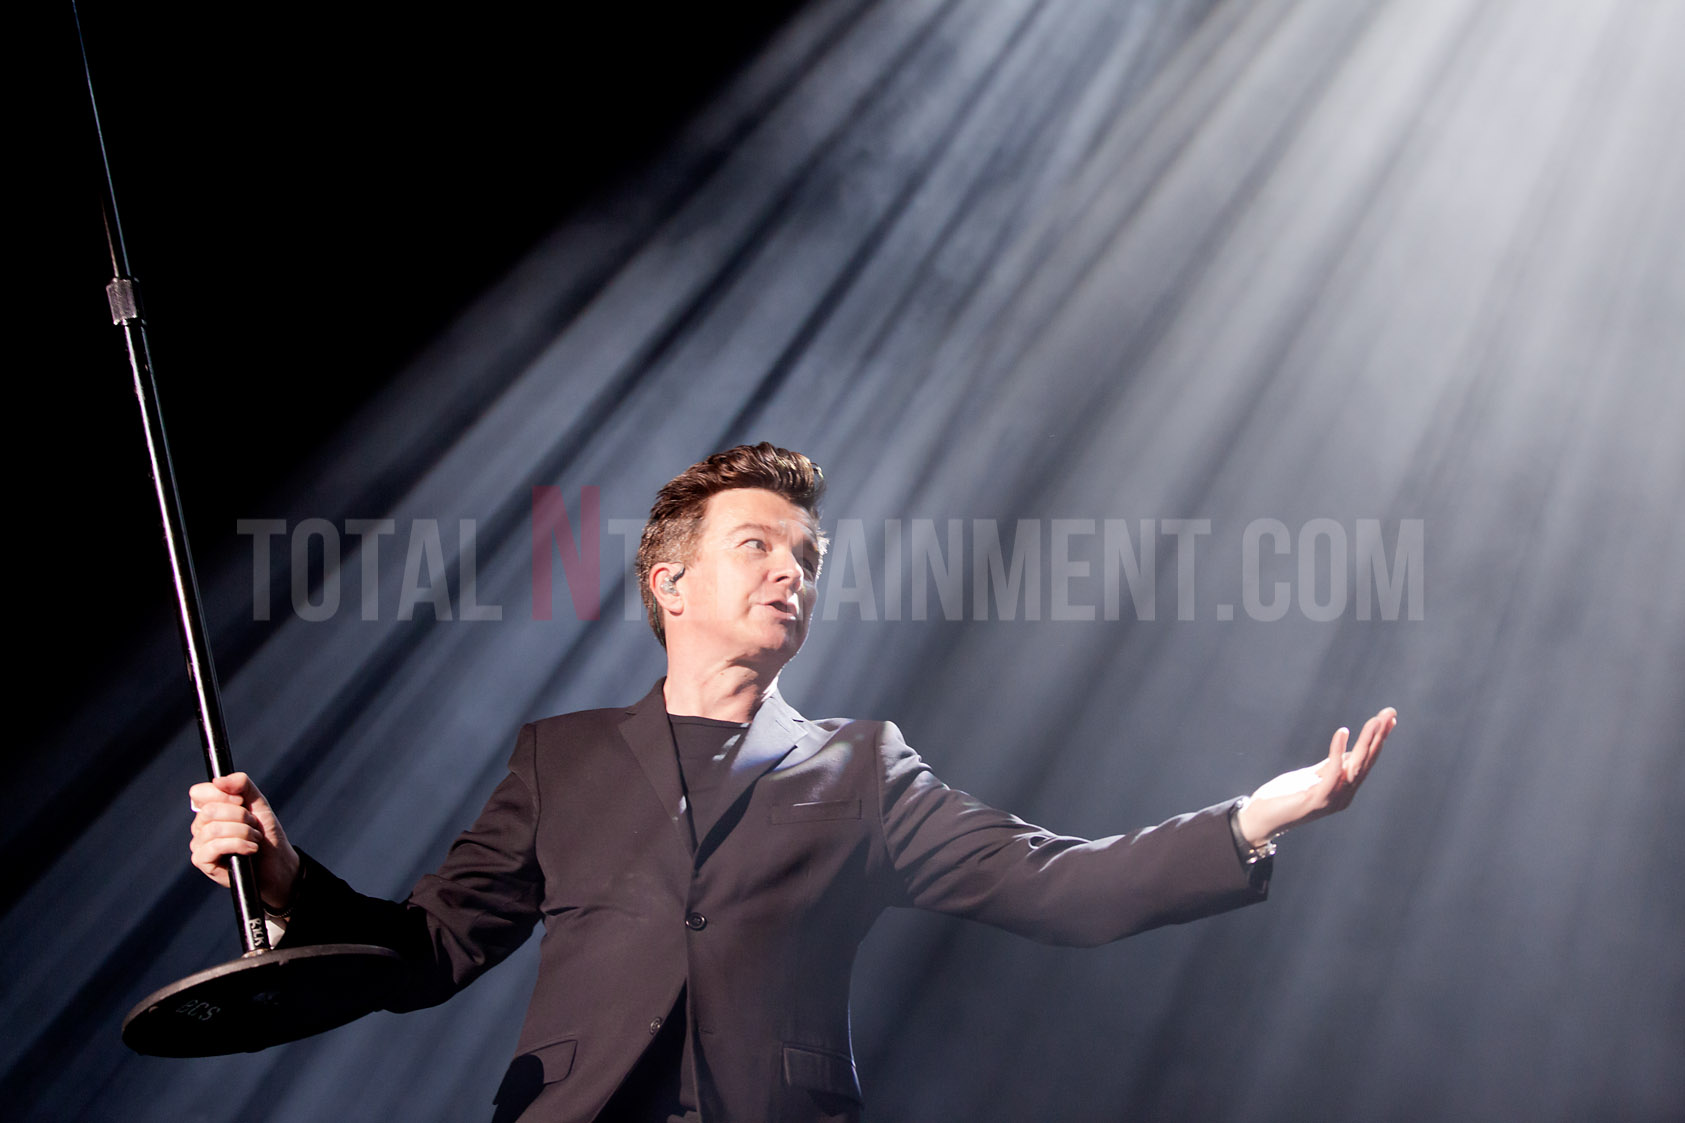 Rick Astley plays to a packed Leeds Arena